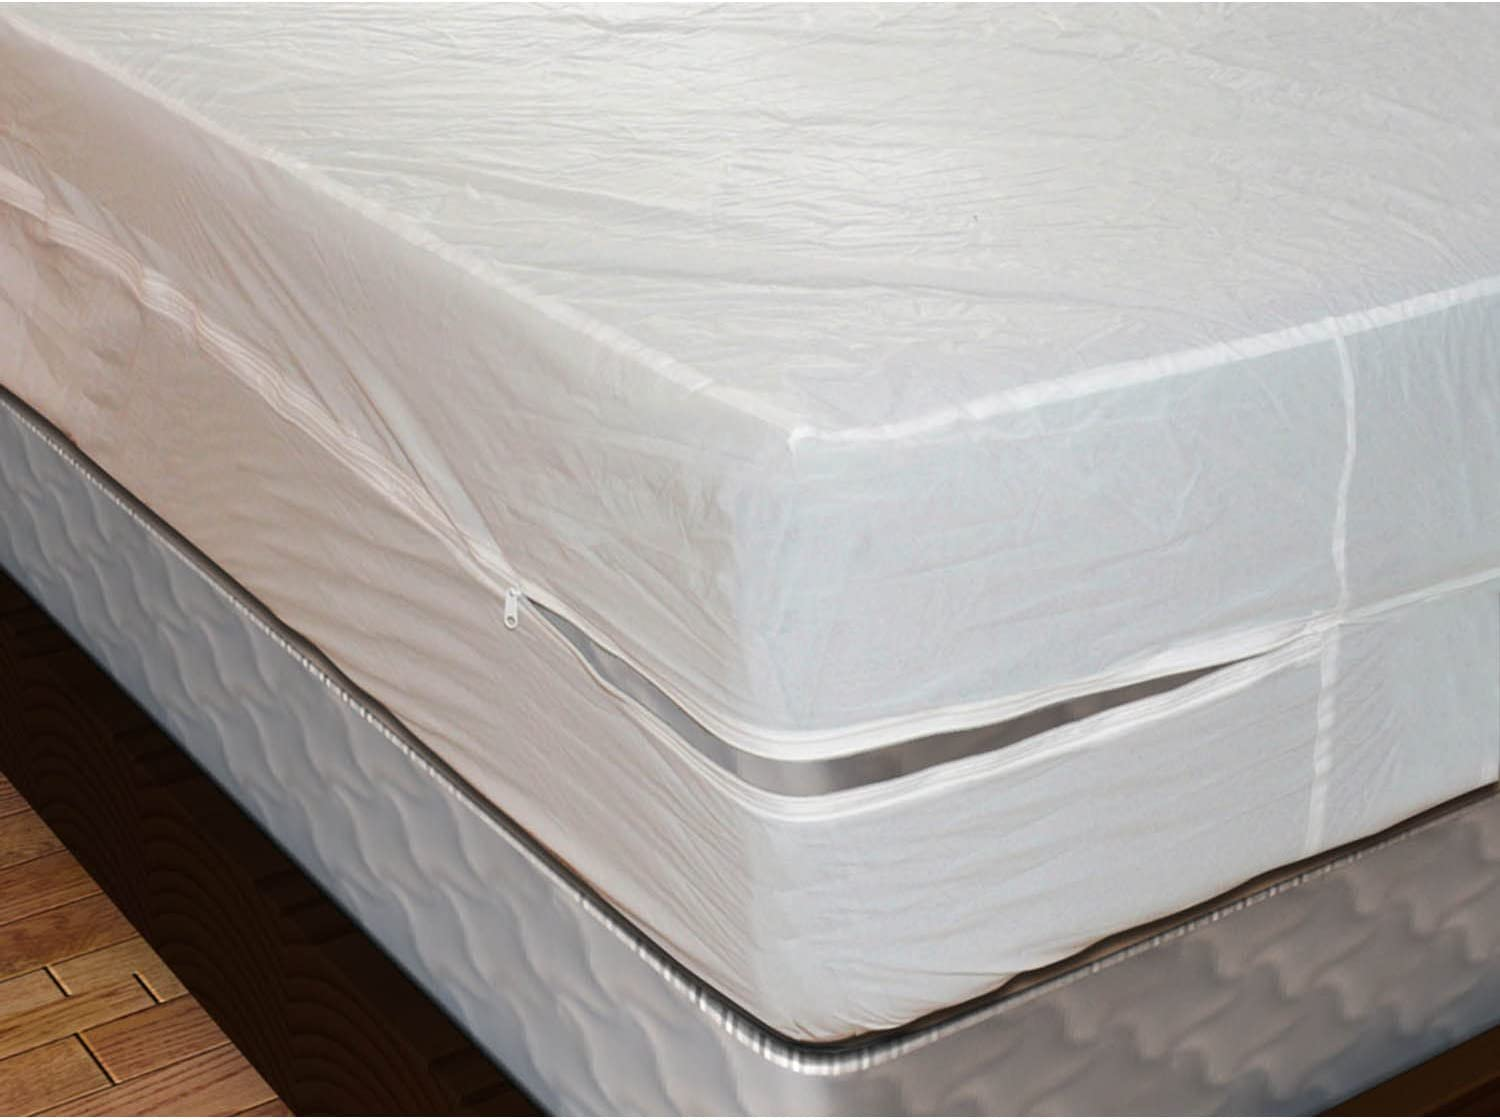 "Shop Bedding Royal Mystique Vinyl Zippered Mattress Cover (Queen, 9"" Depth) - Waterproof, Heavy Duty Vinyl Mattress Protector"